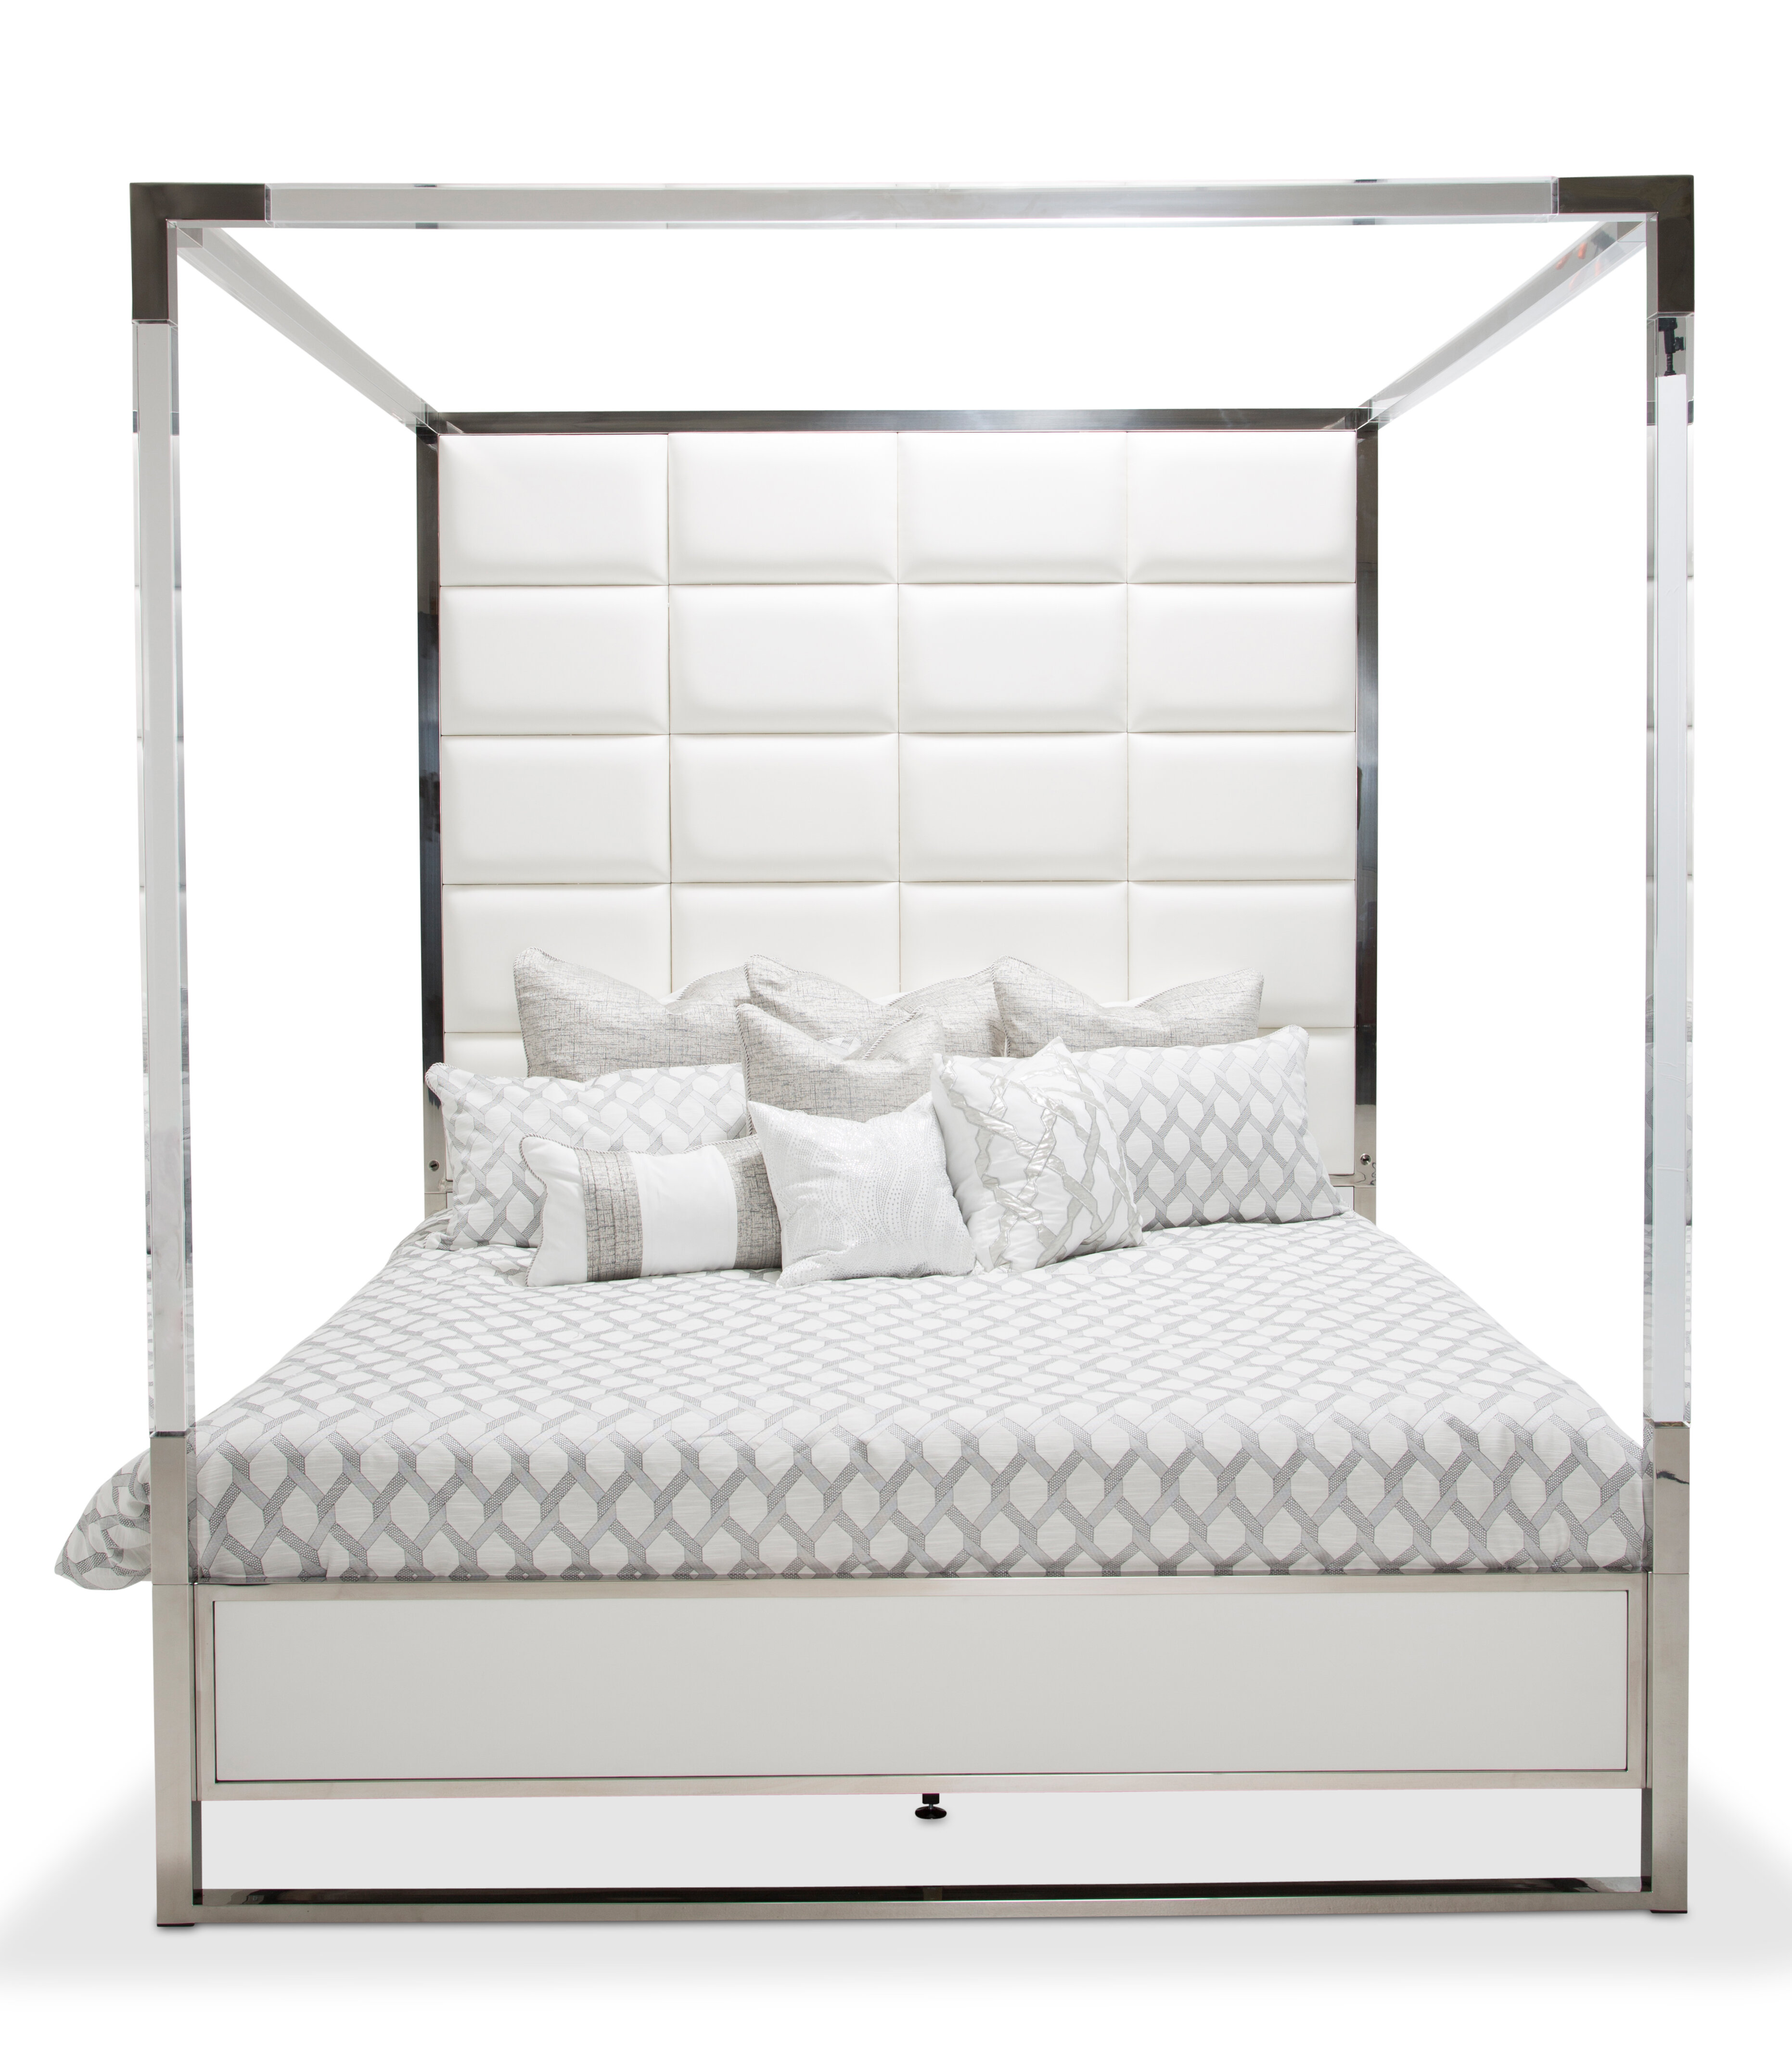 Canopy Glam Beds You Ll Love In 2021 Wayfair